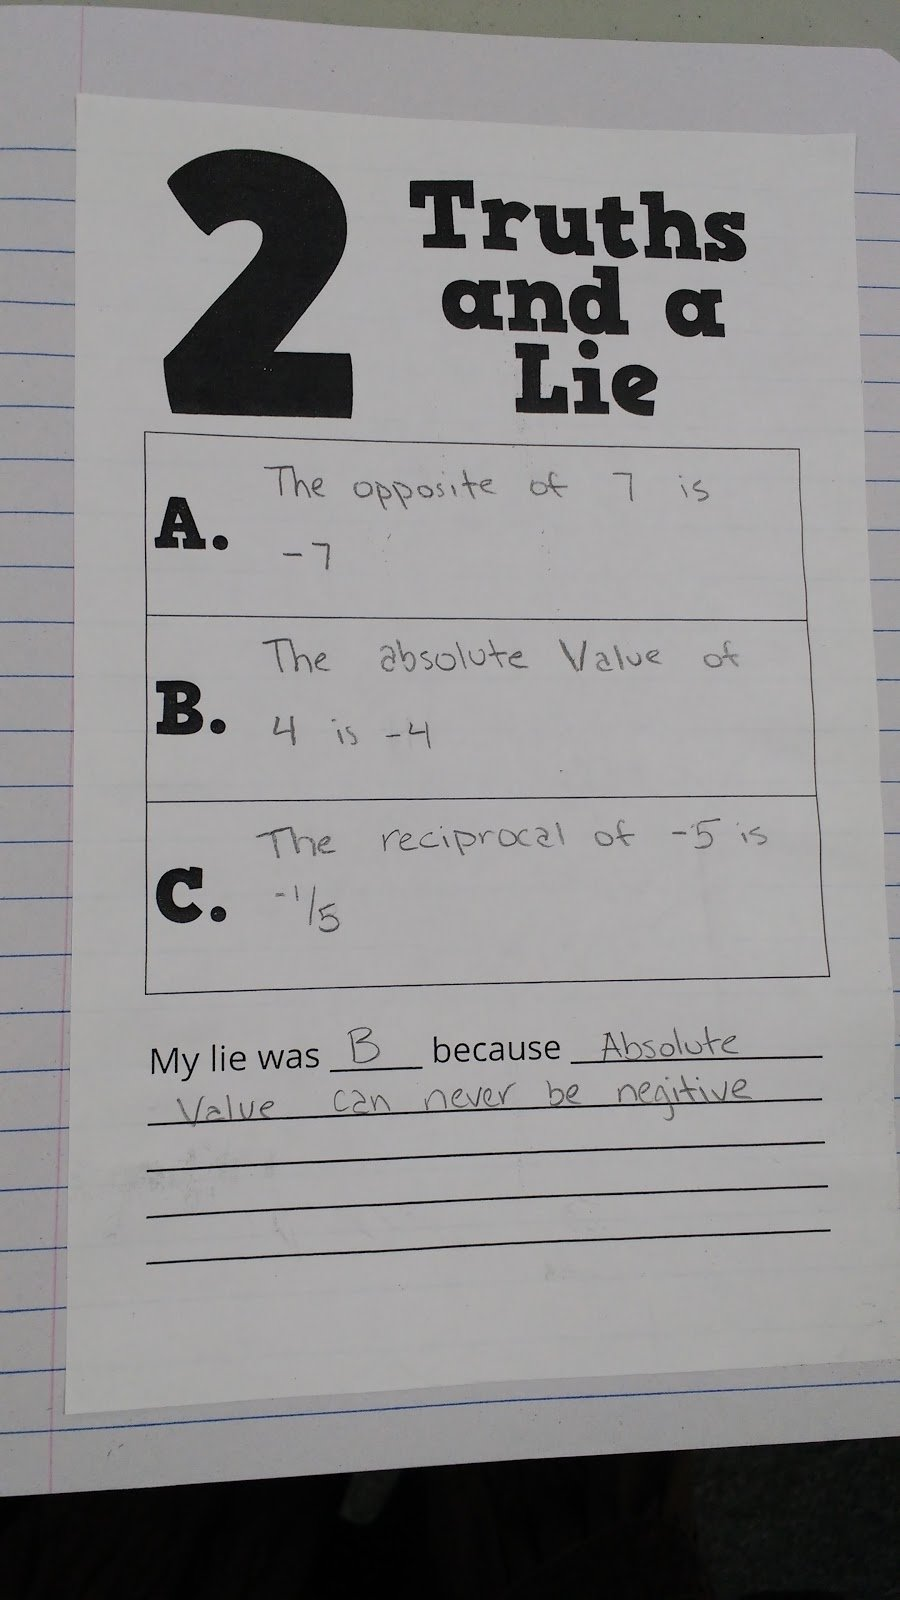 10 Stylish Two Truths And A Lie Ideas math love two truths and a lie activity template 2021